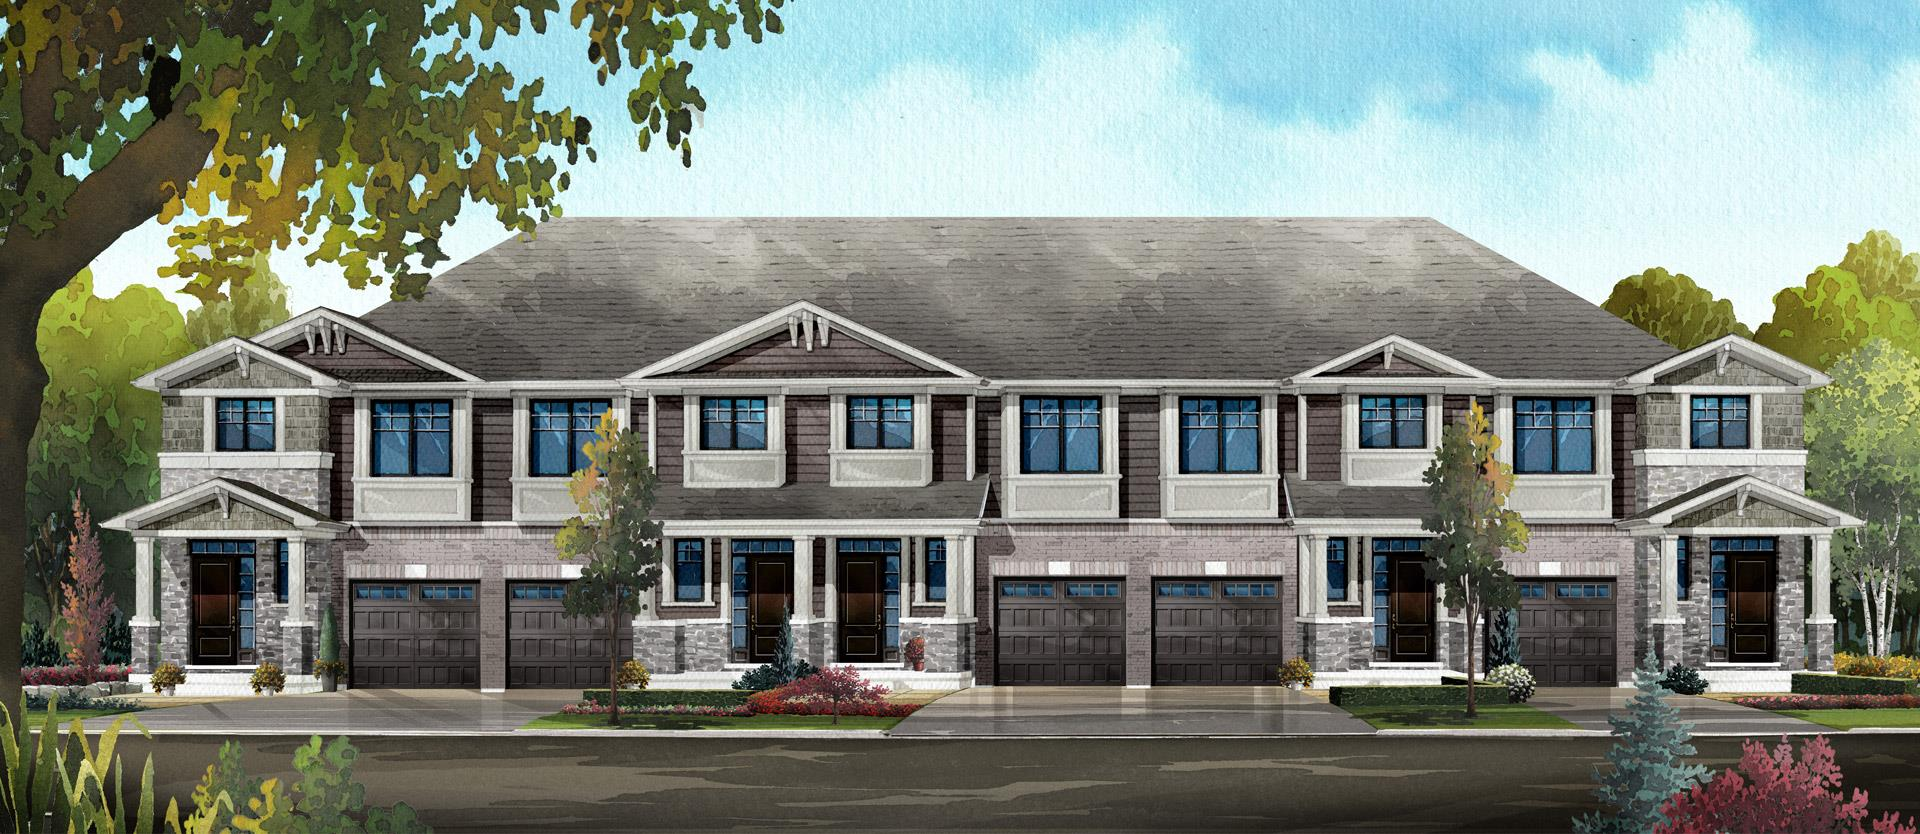 Life Townhomes Plans Prices Availability